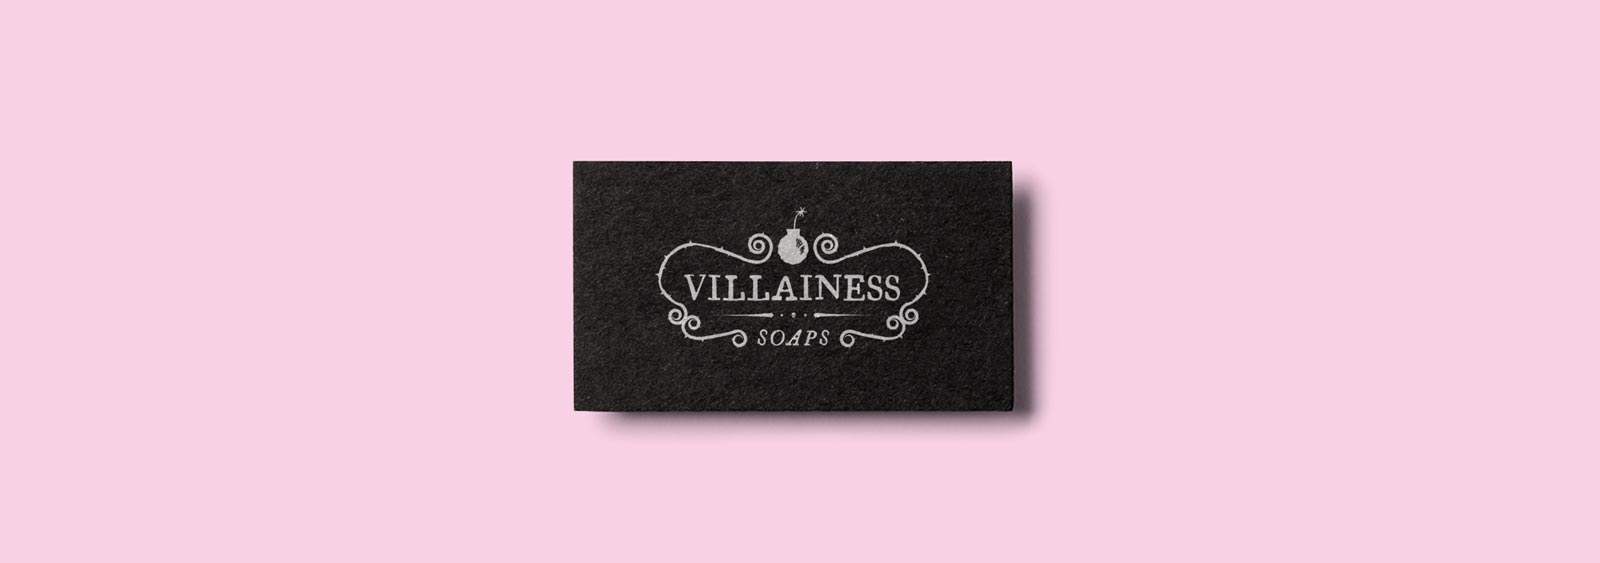 Villainess Soaps Brand Design by Noisy Ghost Co.